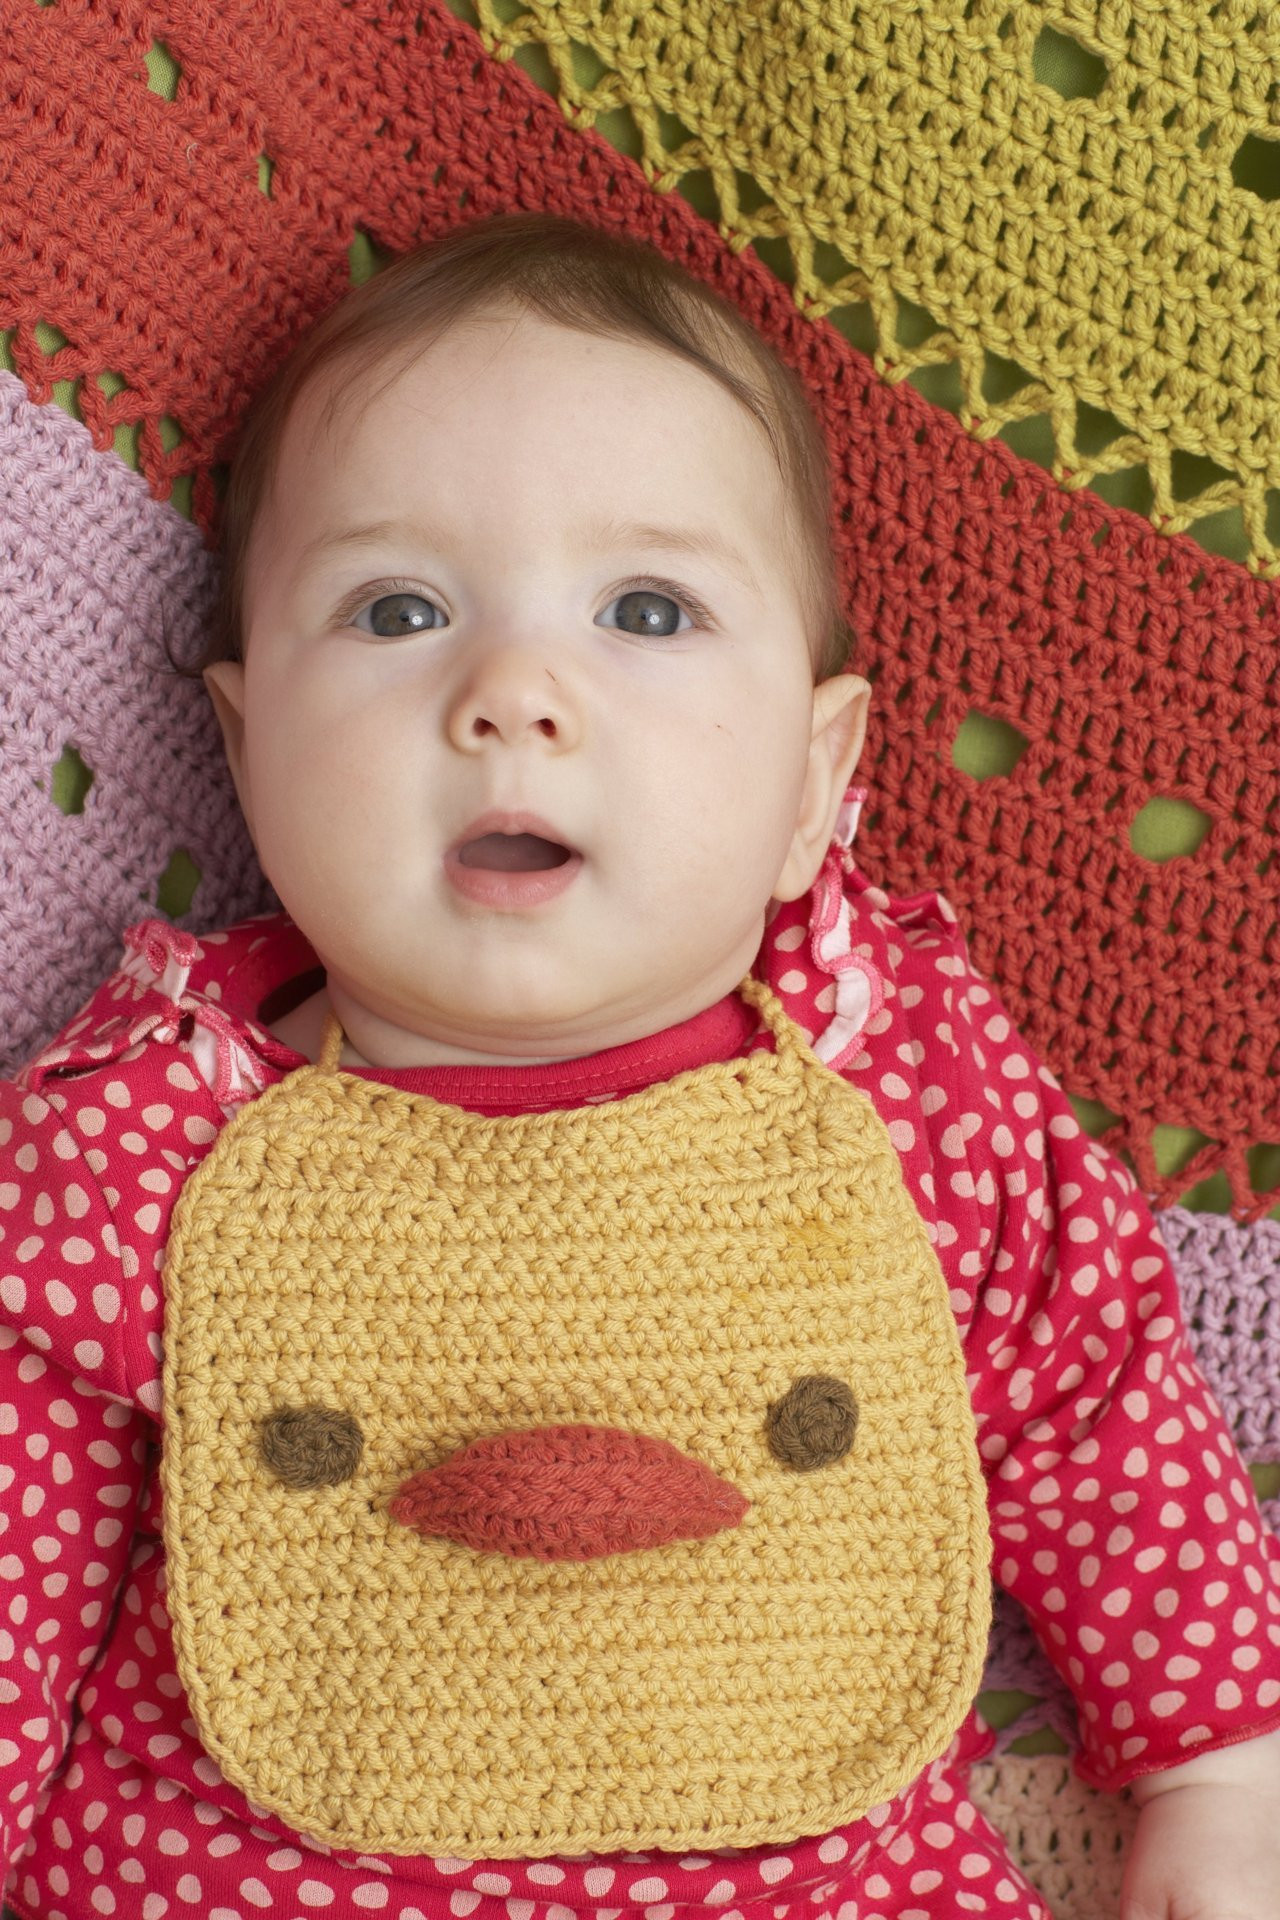 Yarn Over Crochet Best Of Growingbabyjohnson Free Crochet Patterns Of Brilliant 49 Photos Yarn Over Crochet